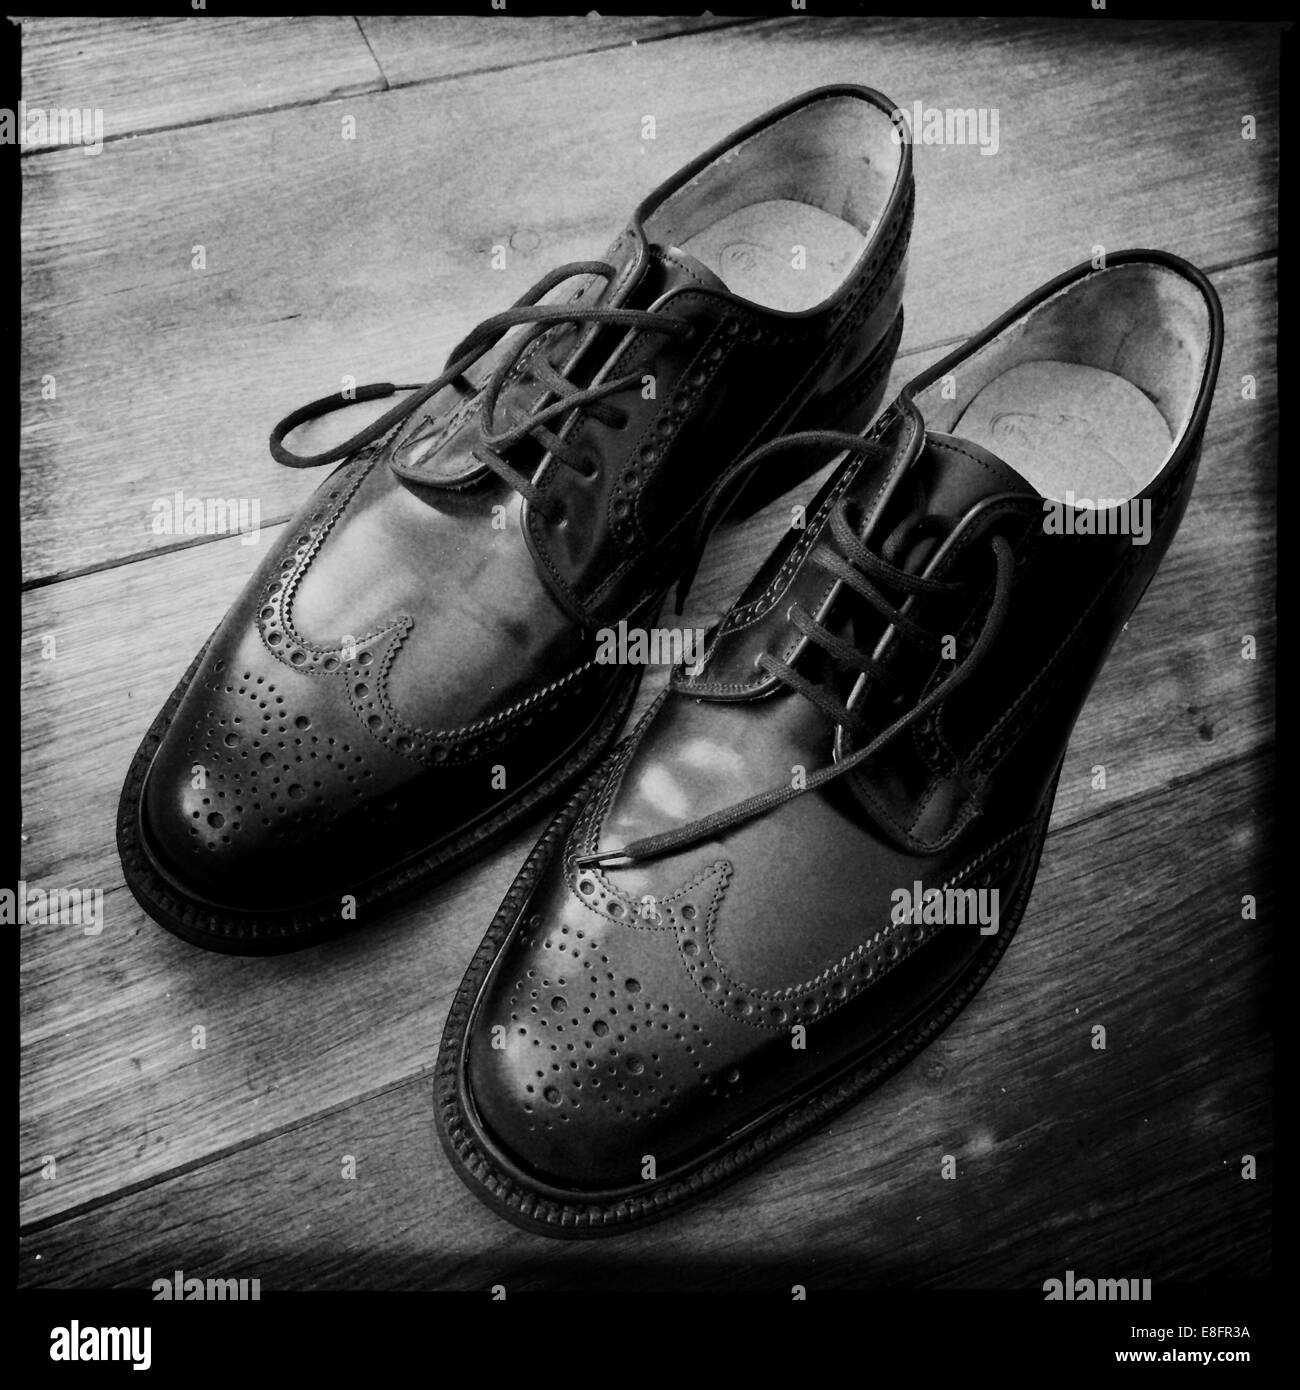 Pair of classic English brogue shoes - Stock Image